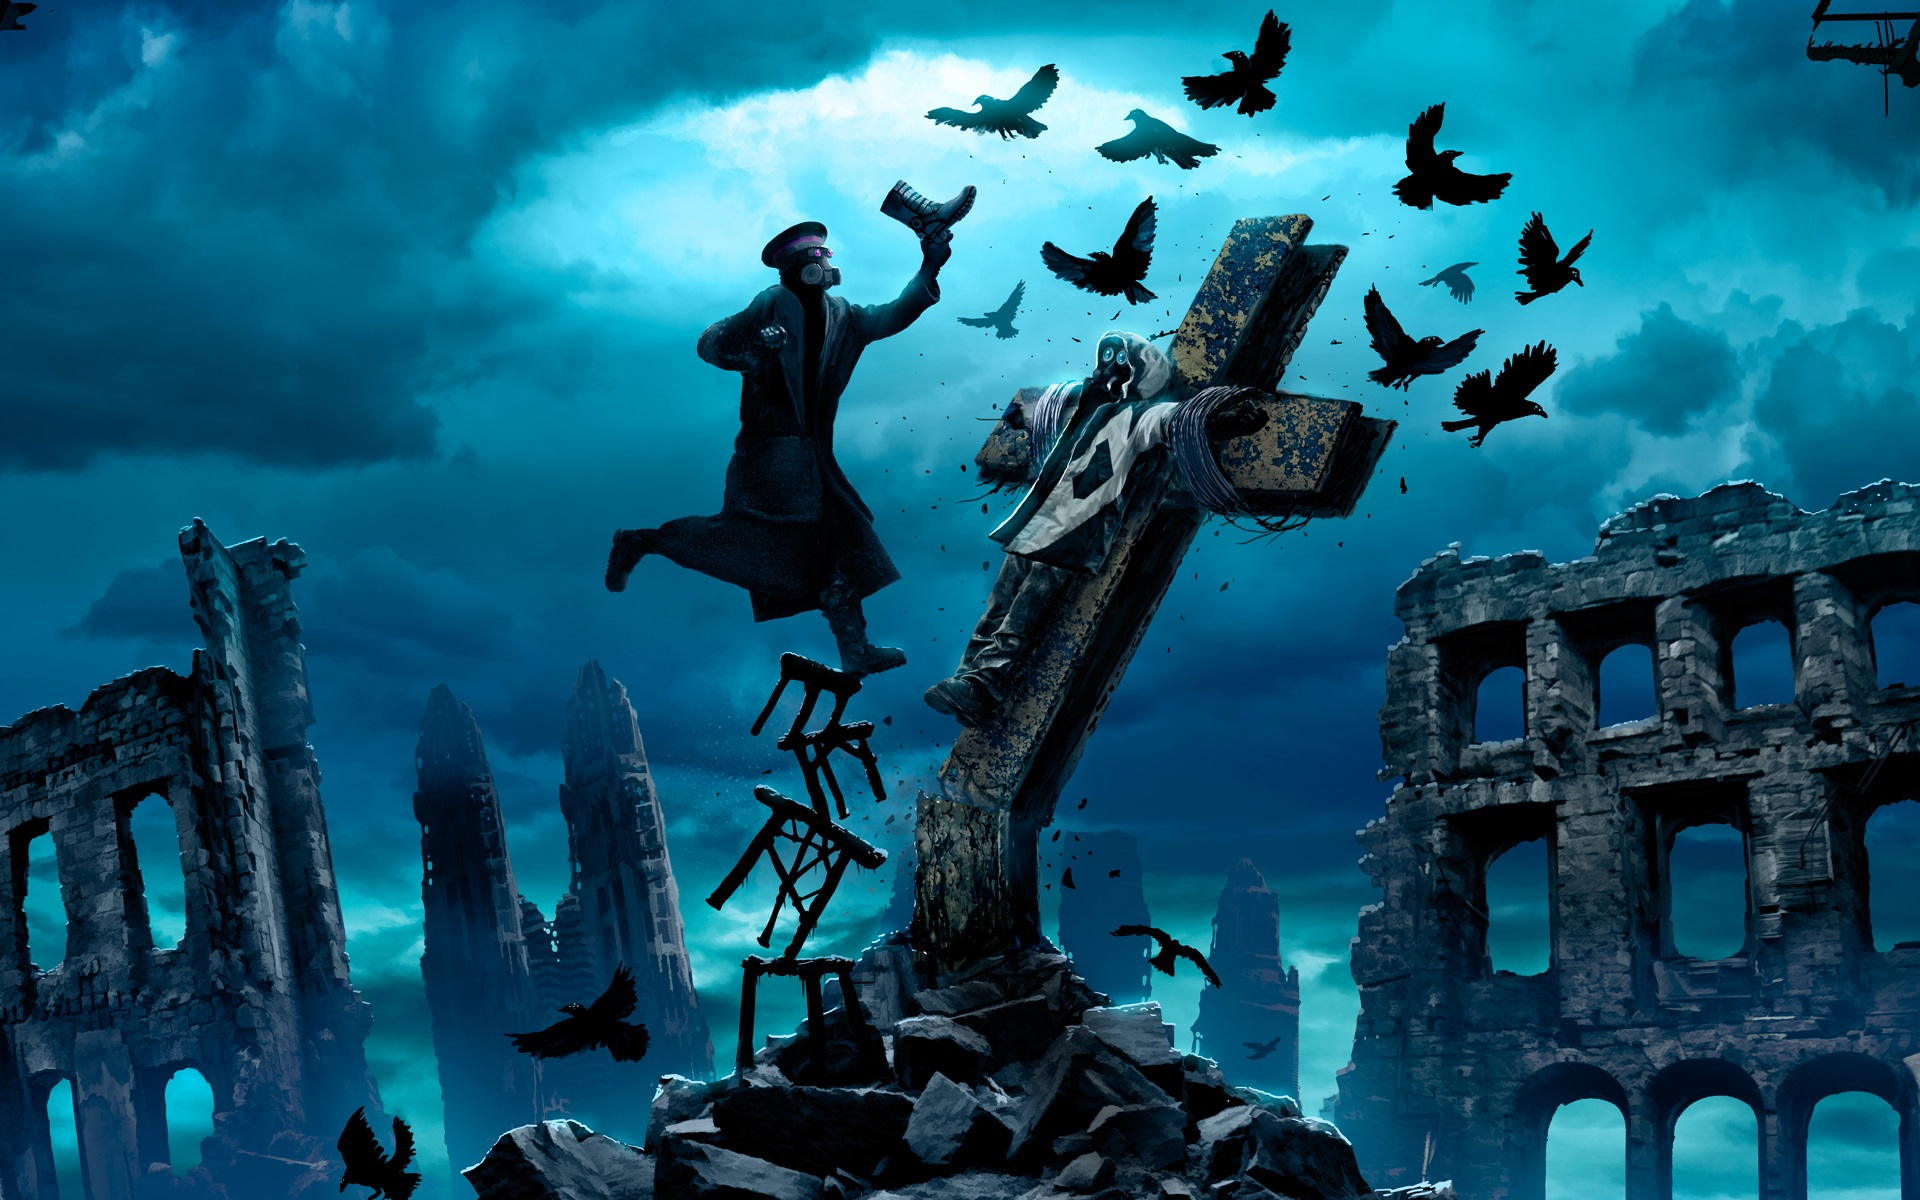 신의 죽음_Romantically-Apocalyptic-crows-ruins-crucifixion-captain-fantasy-art_1920x1200.jpg